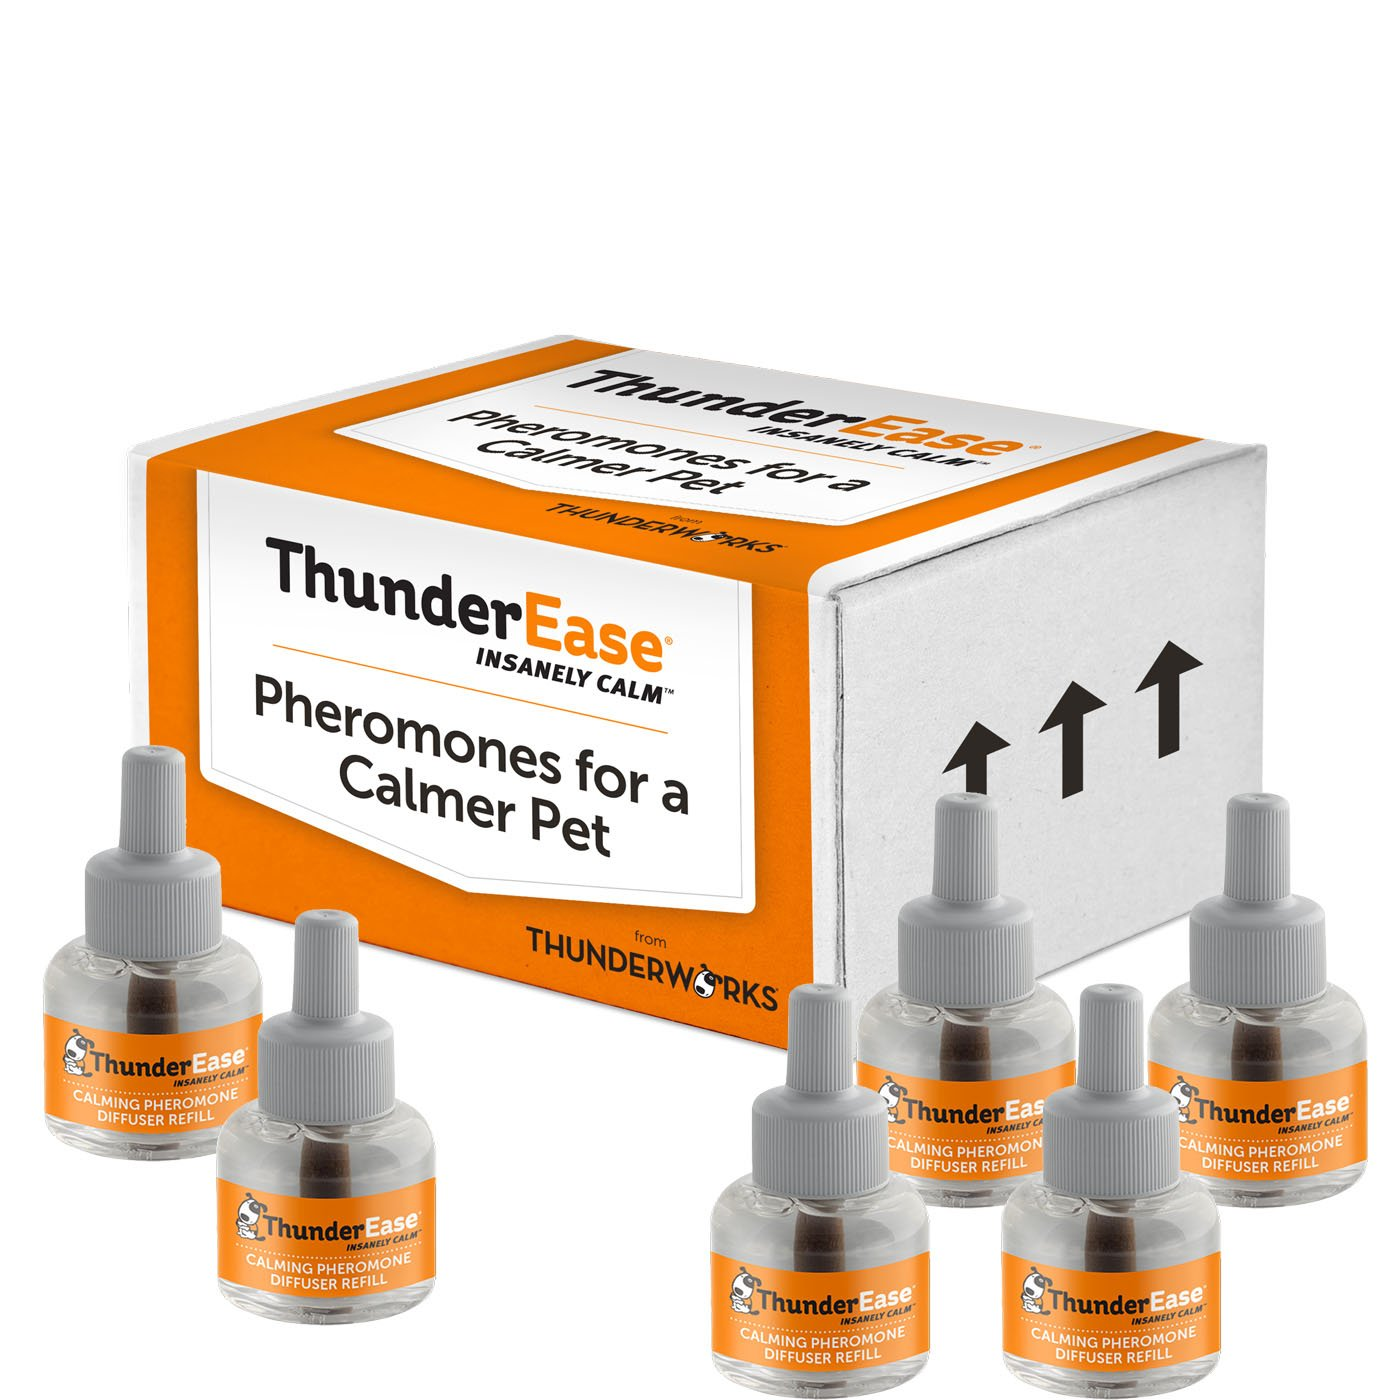 ThunderEase Dog Calming Pheromone Diffuser Refill | Powered by ADAPTIL | Vet Recommended to Relieve Separation Anxiety, Stress Barking and Chewing, and the Fear of Fireworks and Thunderstorms (180 Day by ThunderEase